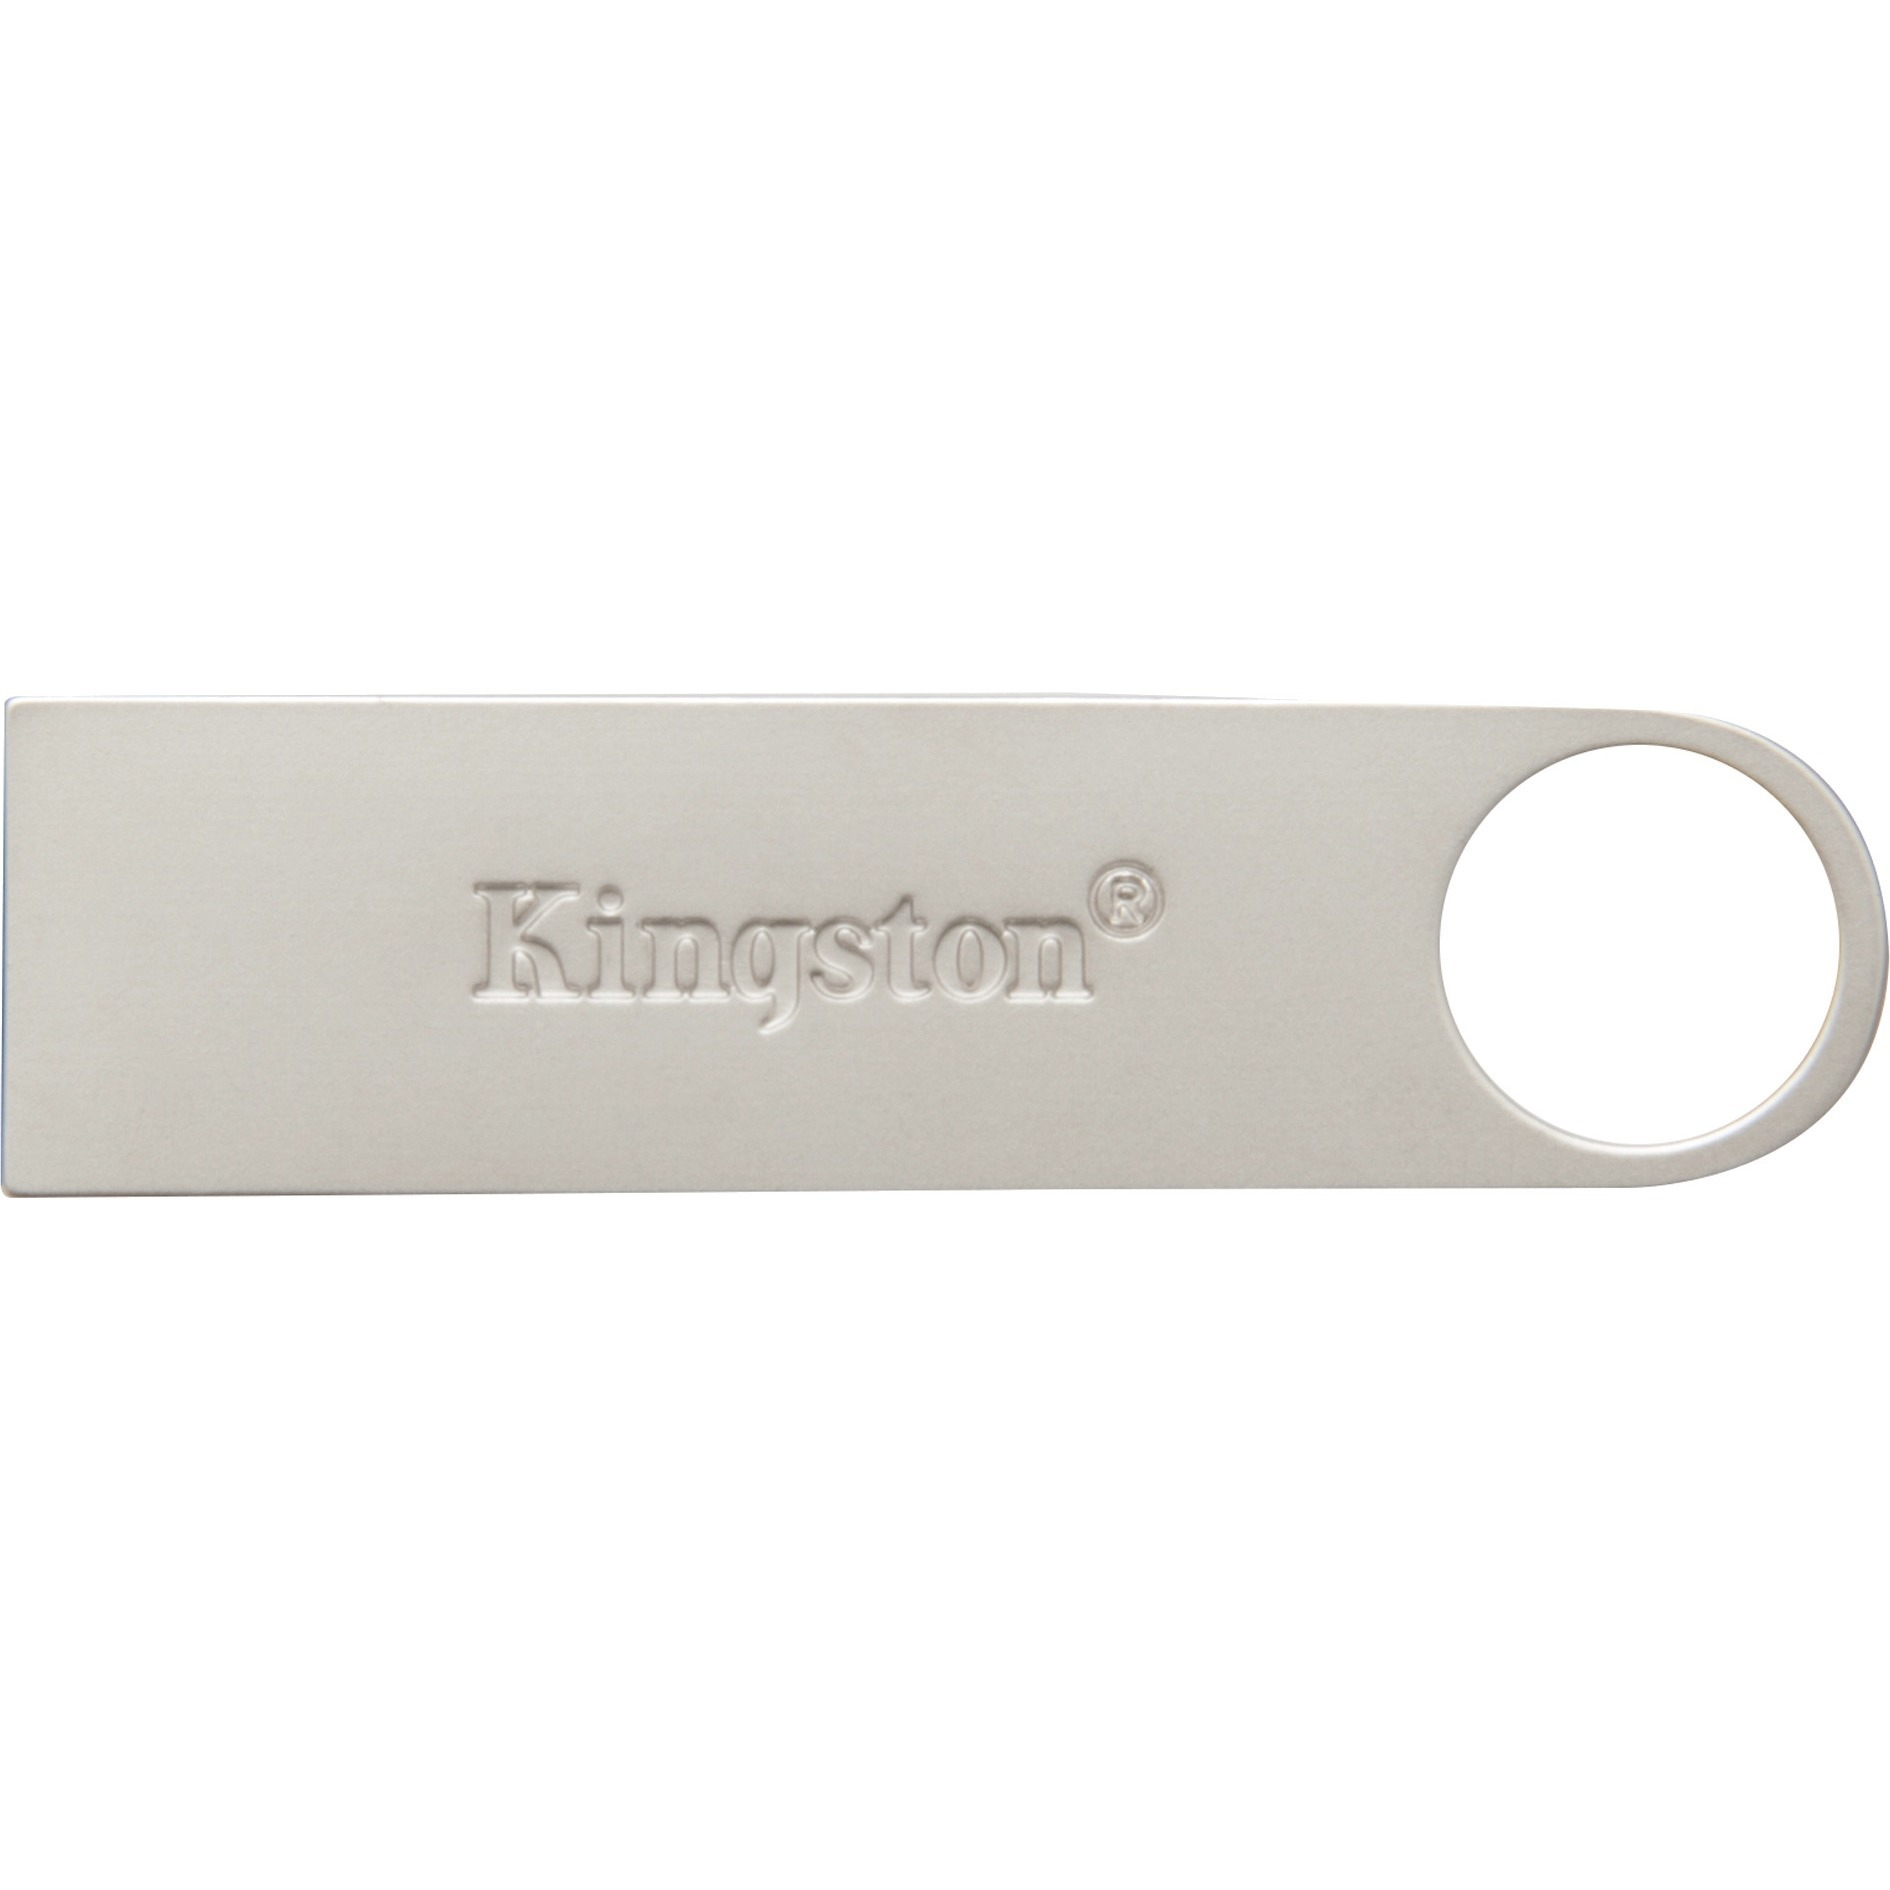 Kingston DataTraveler SE9 G2 32 GB USB 3.0 Flash Drive - Silver